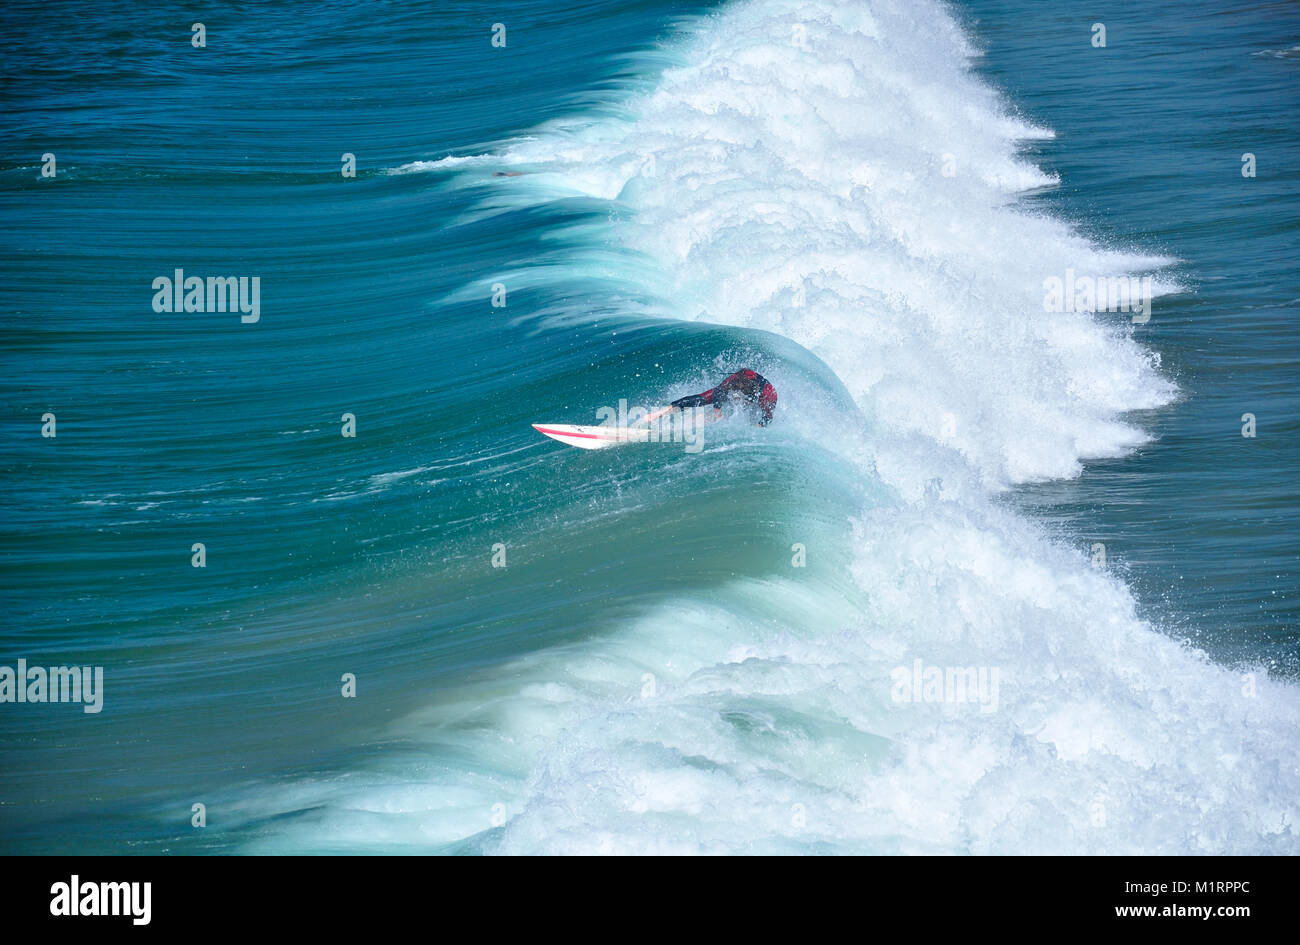 A surfer riding the waves and wiping out at Manhattan beach california on a sunny day on the west coast. - Stock Image